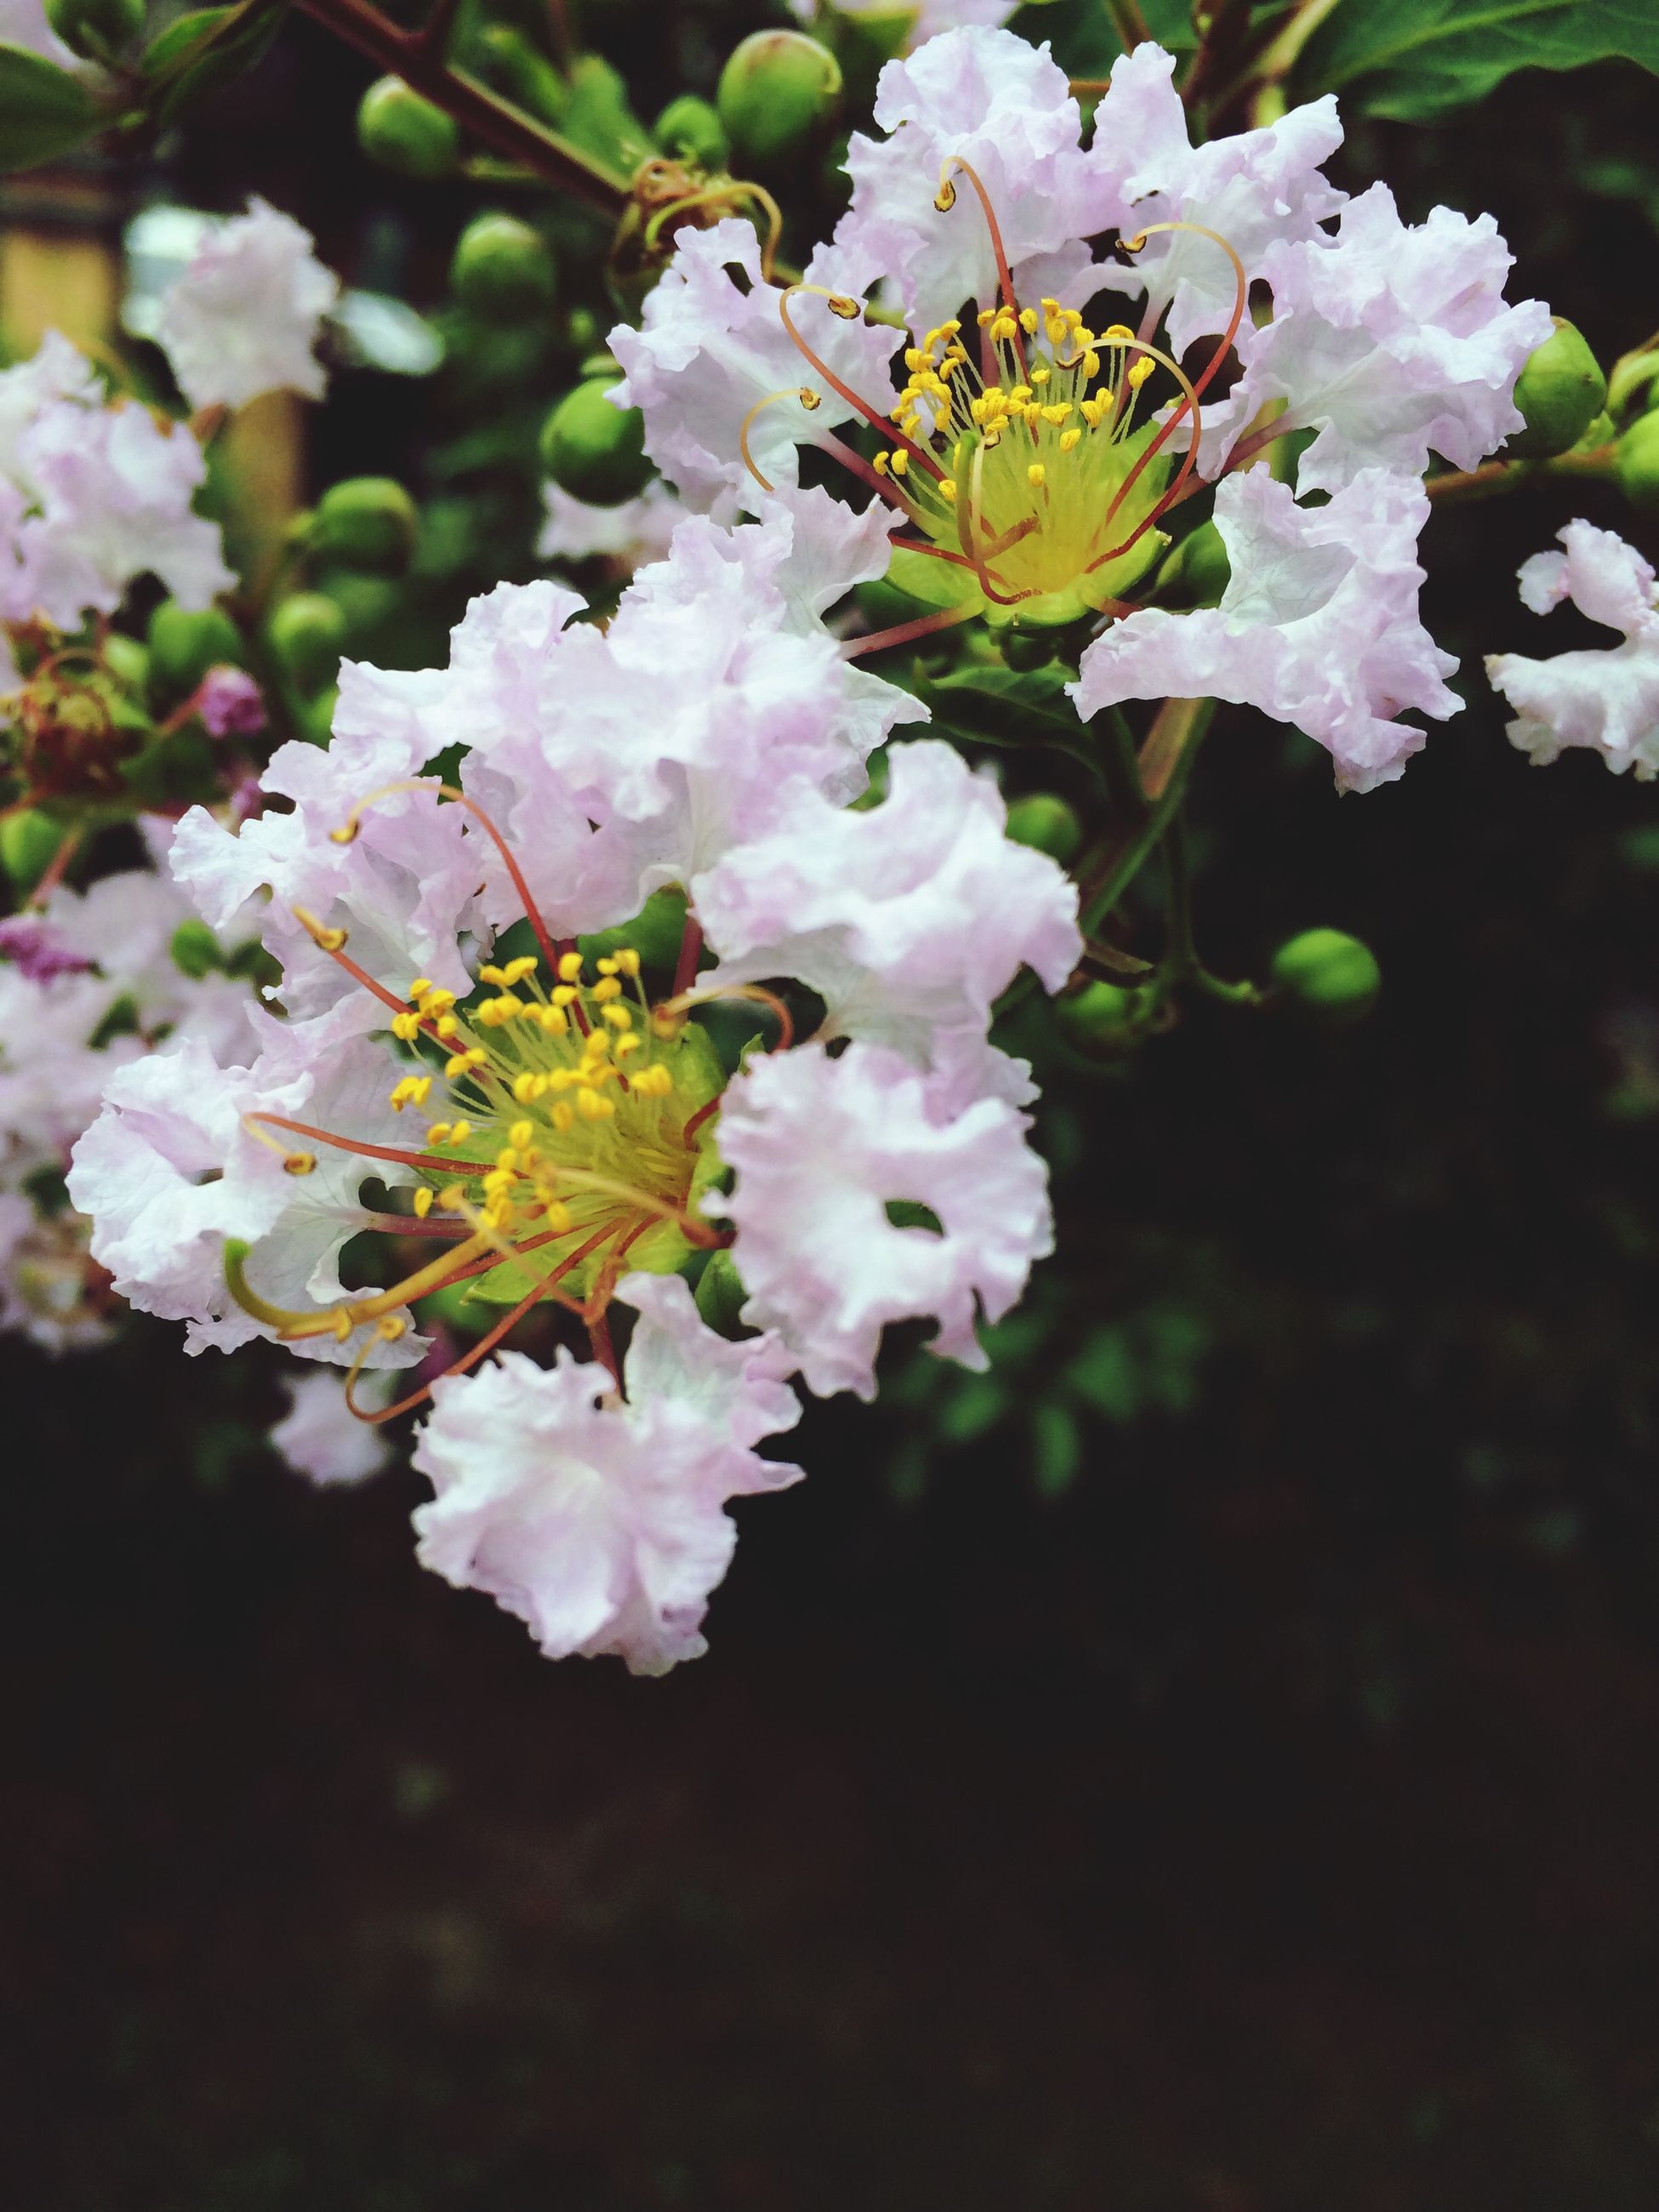 flower, freshness, fragility, petal, growth, beauty in nature, flower head, nature, blooming, in bloom, blossom, close-up, focus on foreground, plant, white color, botany, park - man made space, bunch of flowers, springtime, leaf